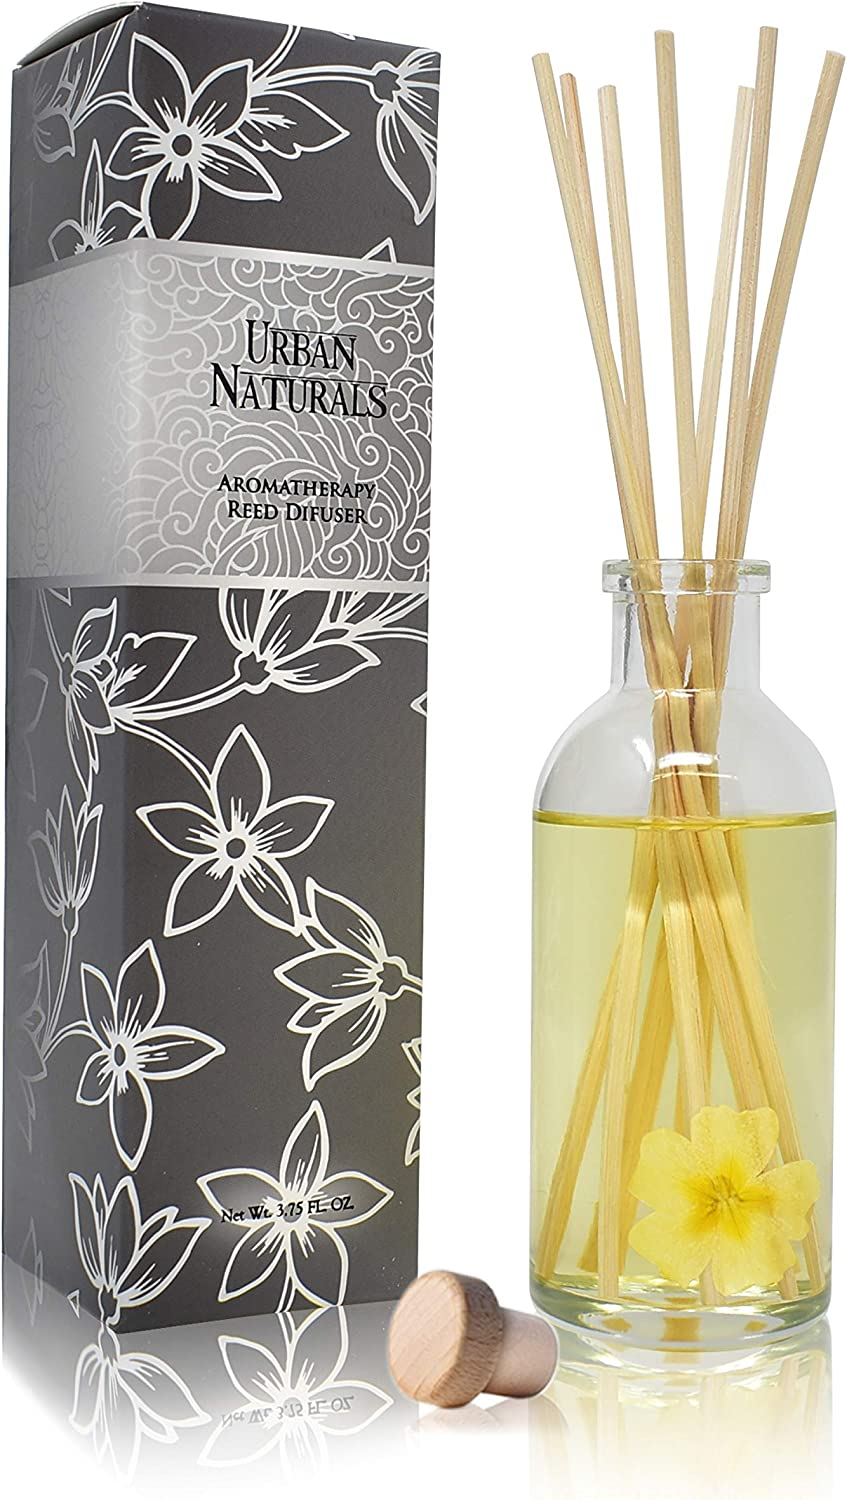 Urban Naturals Timeless Jasmine Gardenia Air Scent Reed Diffuser Set | Beautiful Floral Home Decor with Real Flowers Inside The Bottle! Great Housewarming Gift Idea